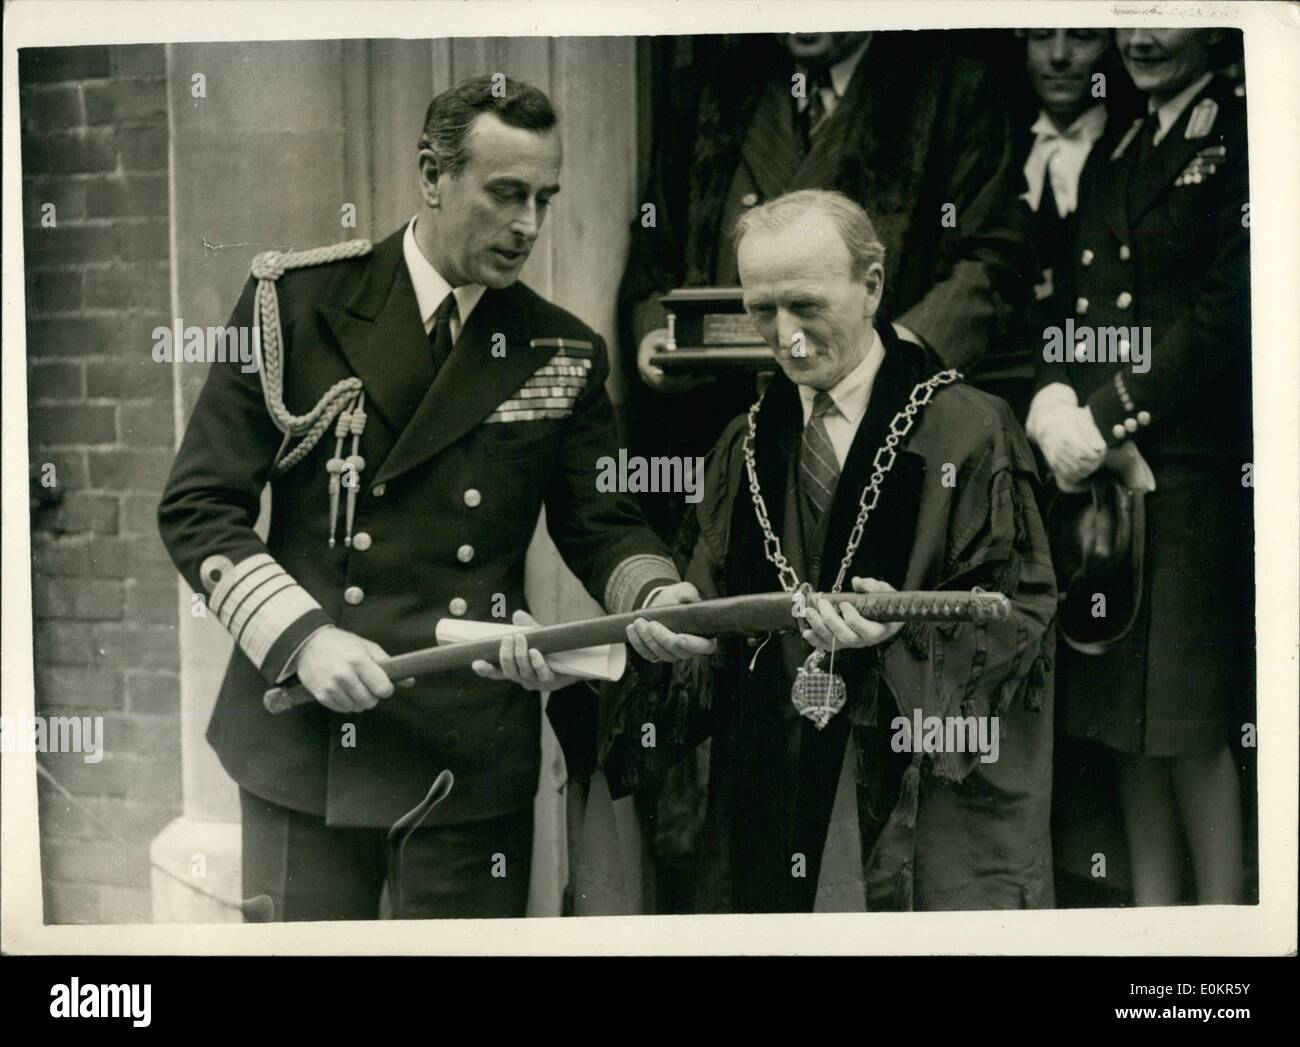 Jun. 06, 1946 - Lord Louis Mountbatten Received Freedom Of Romsey. Presents Souvenir To Ancient Borough: Admiral Stock Photo